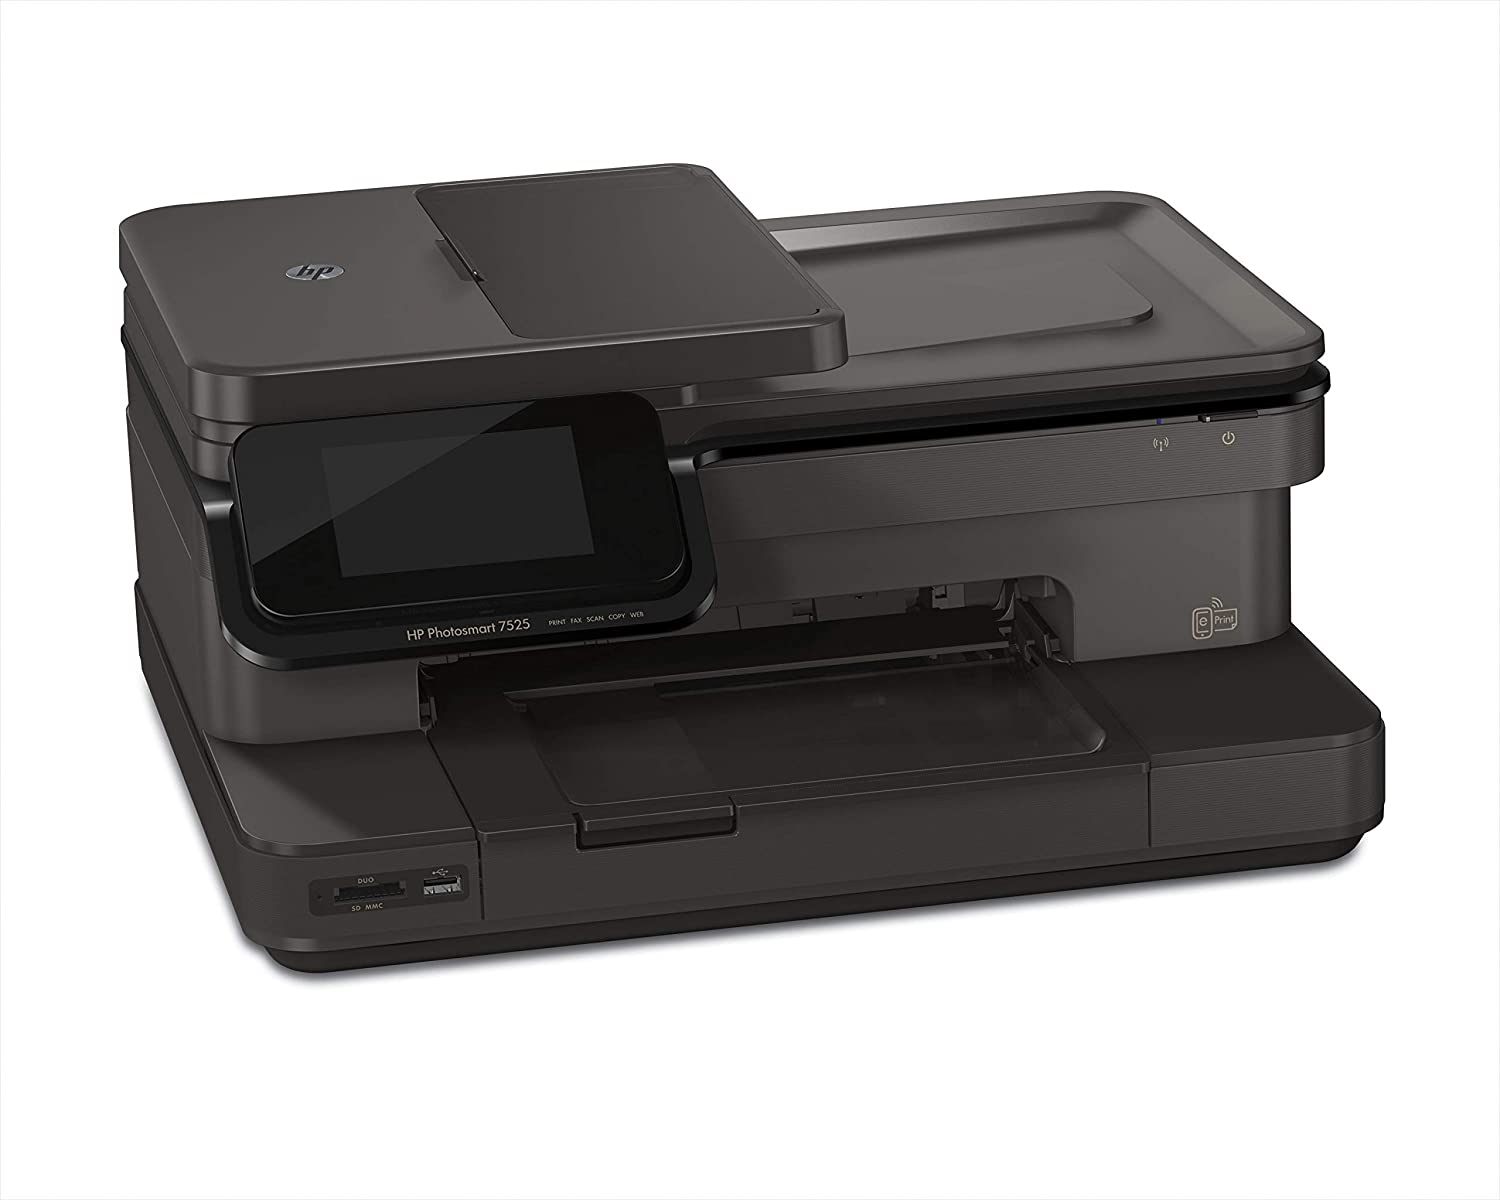 "Amazon.com: HP Photosmart 7525 e-All-in-One Inkjet Printer: 4.3"" Touch  Screen , Wireless, Duplex Print, Copy, Scan, Fax: Electronics"